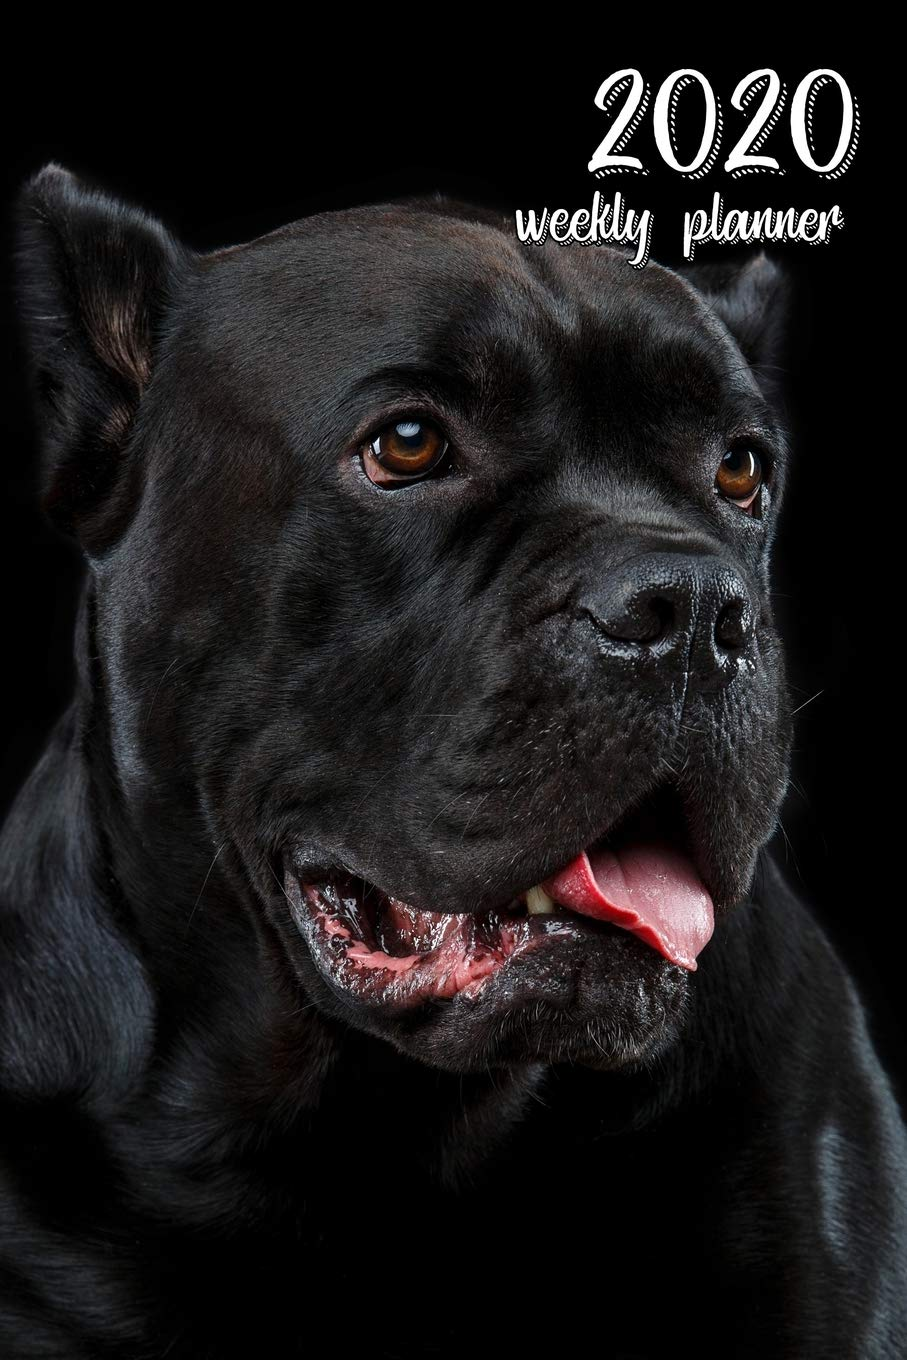 2020 Weekly Planner 6 X 9 In Cane Corso 52 Weekly Calendar